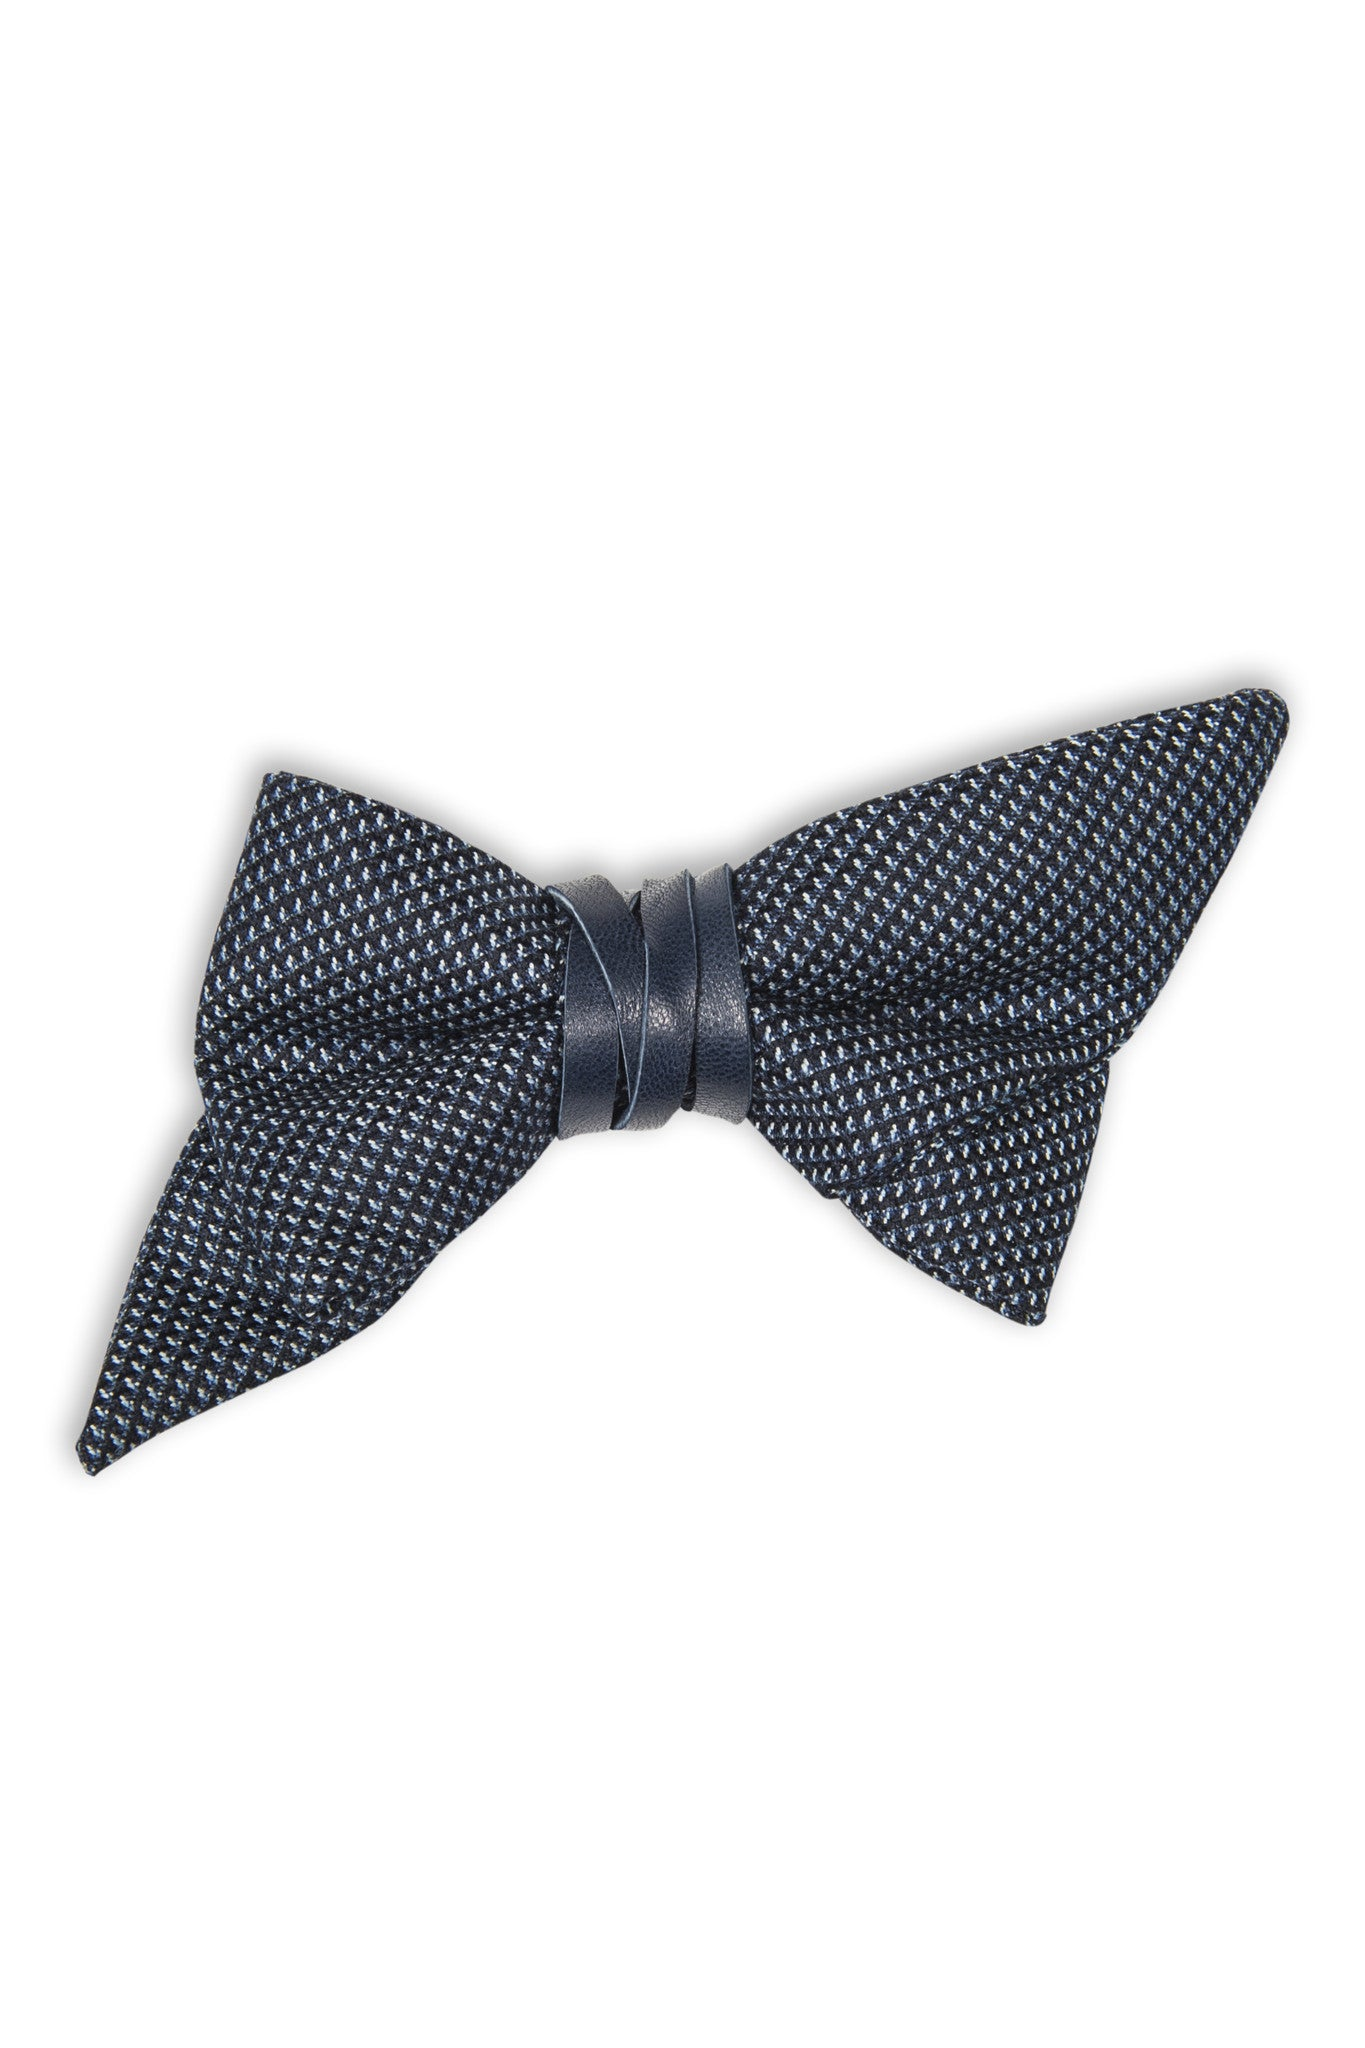 Noeud papillon avec cuir bleu et coupe spéciale - Blue wool bow tie with leather and special cut